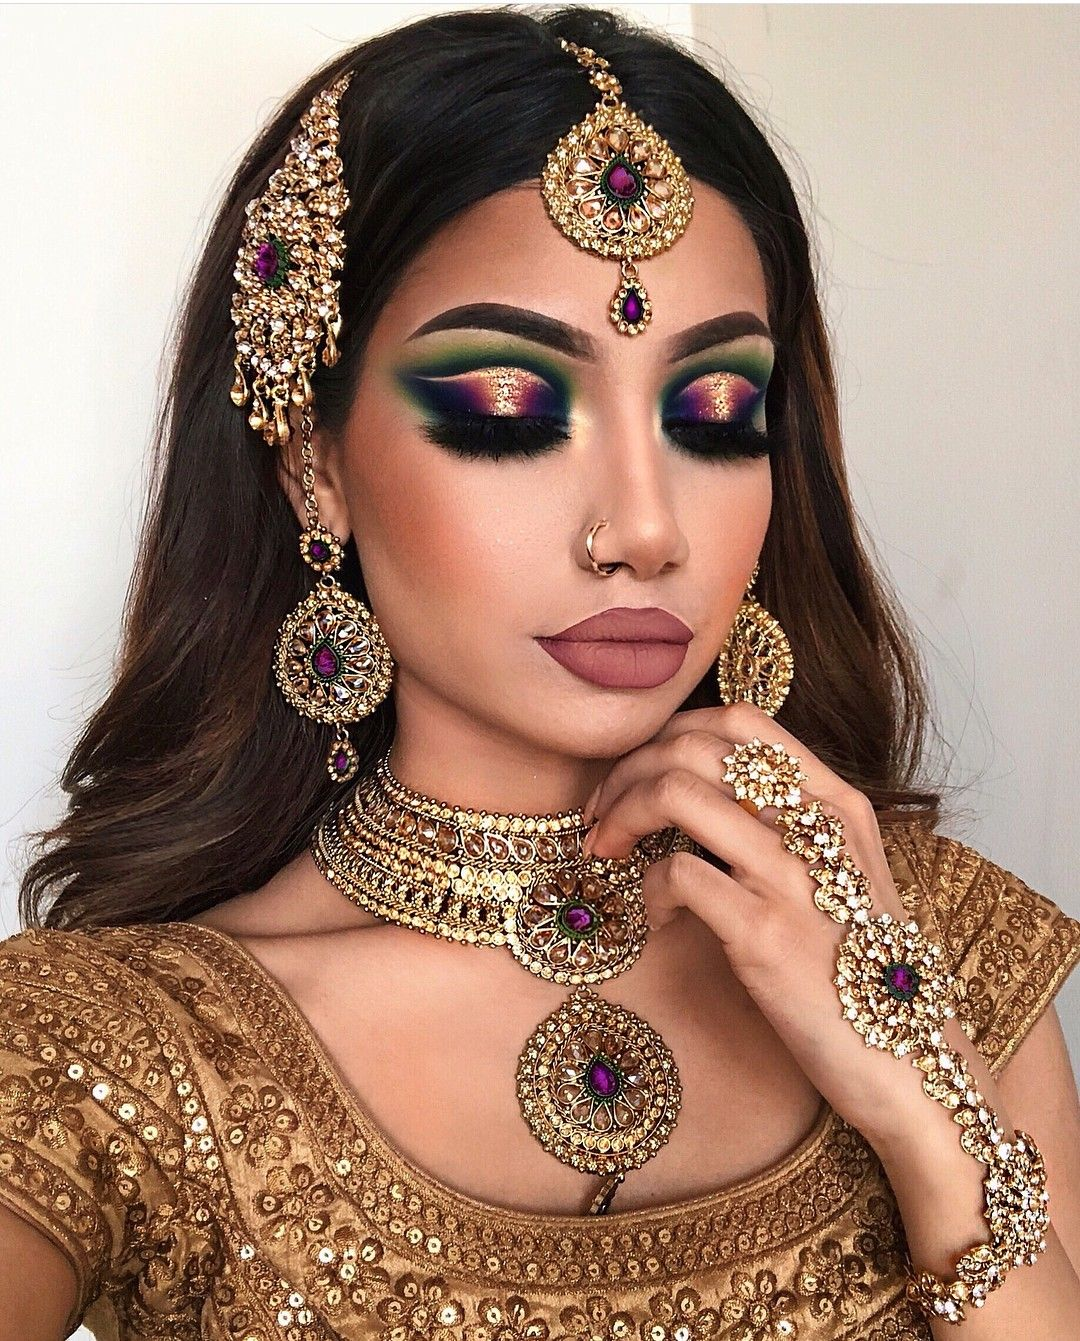 Bollywood makeup image by Aaru Sharma on favourite